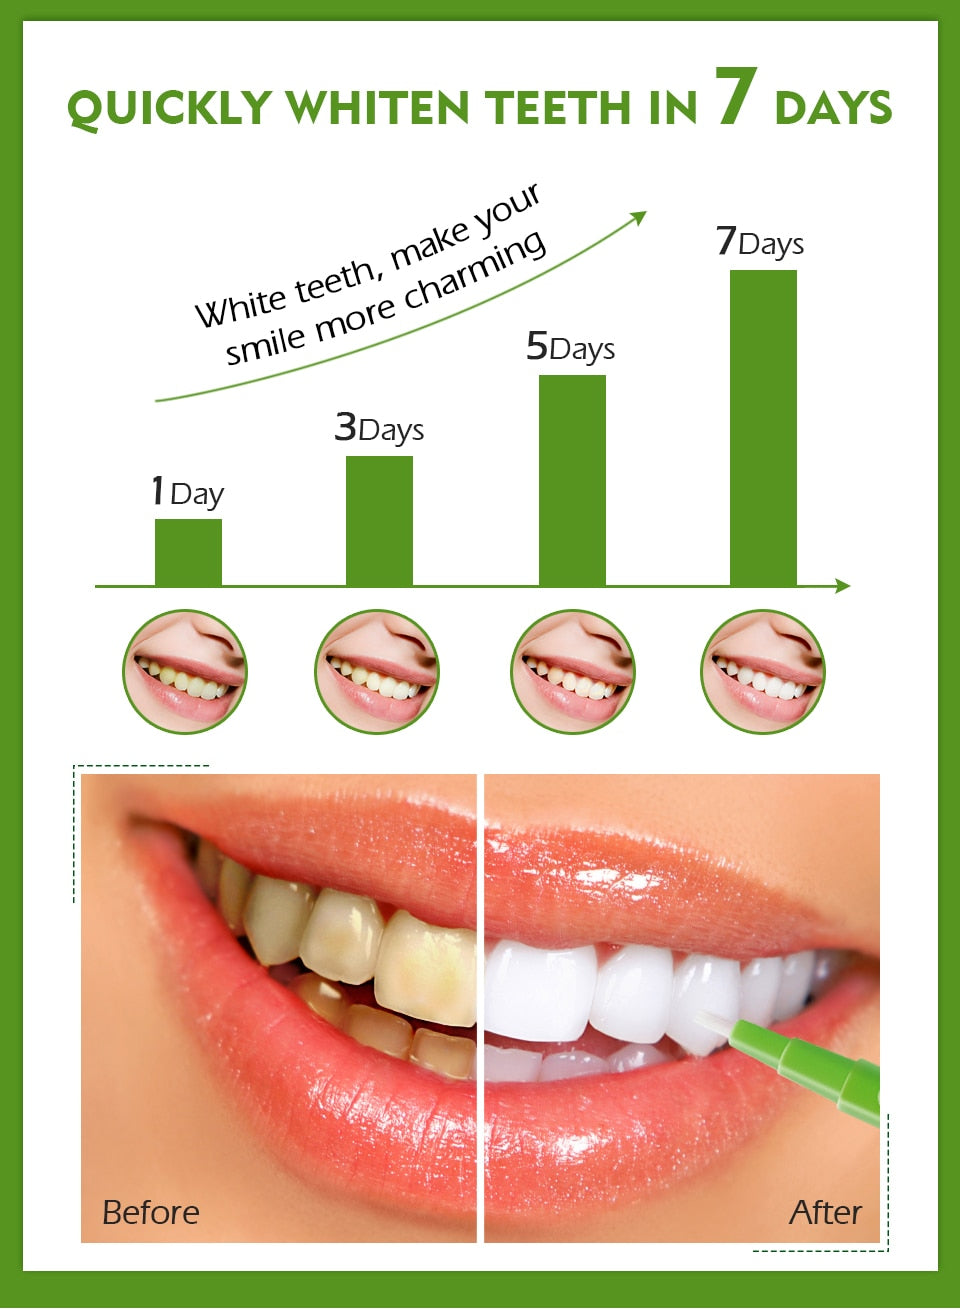 HOT SALE VIBRANT GLAMOUR Teeth Whitening Pen Cleaning Serum Remove Plaque Stains Dental Tools - MARI MAR SHOP